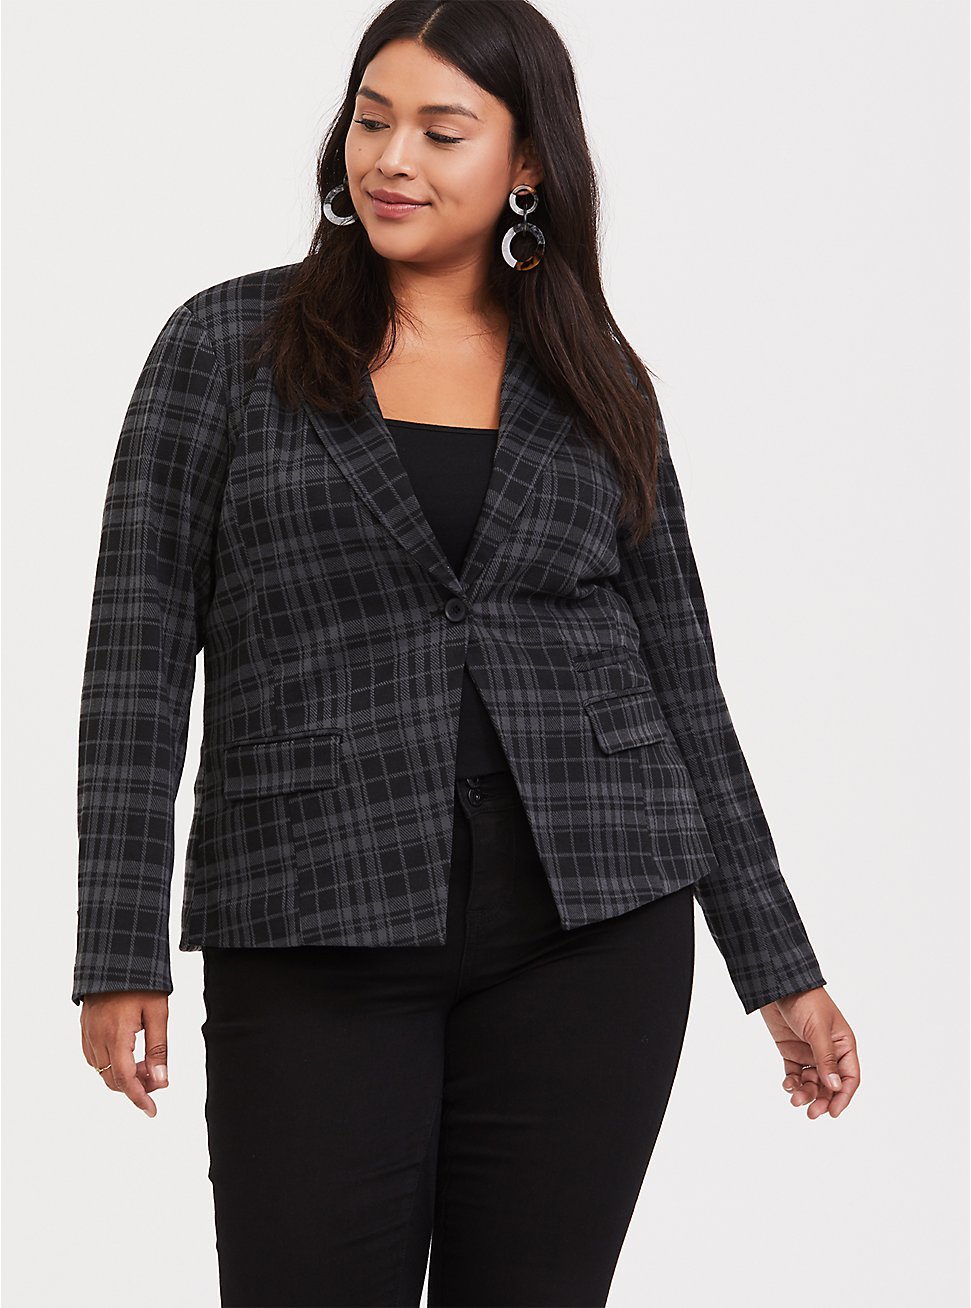 Grey & Black Plaid Double-Knit Blazer, PLAID, hi-res